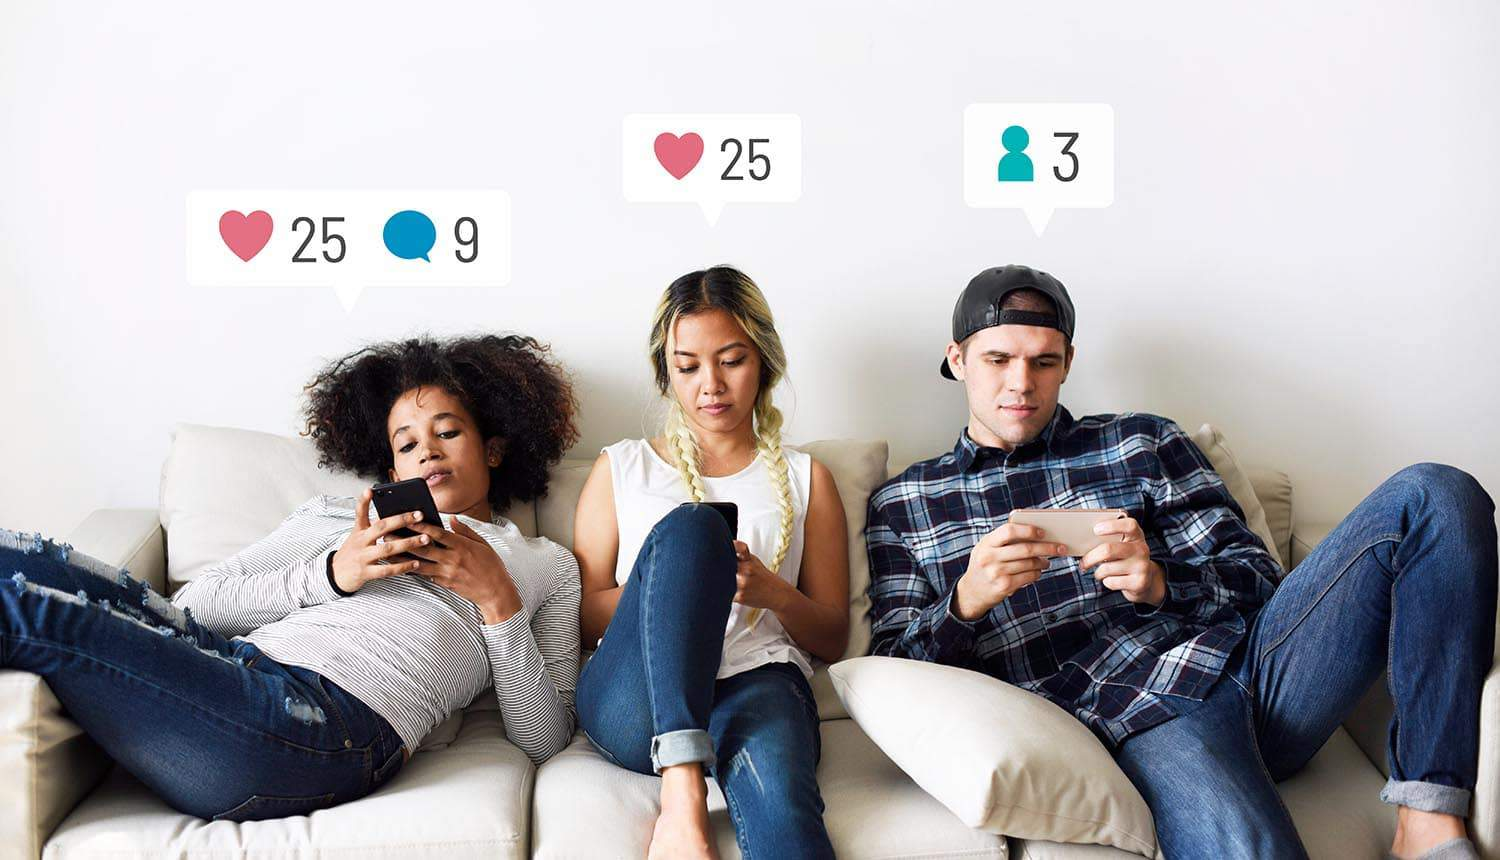 Young adults on the couch using smartphones showing privacy policy update for WhatsApp